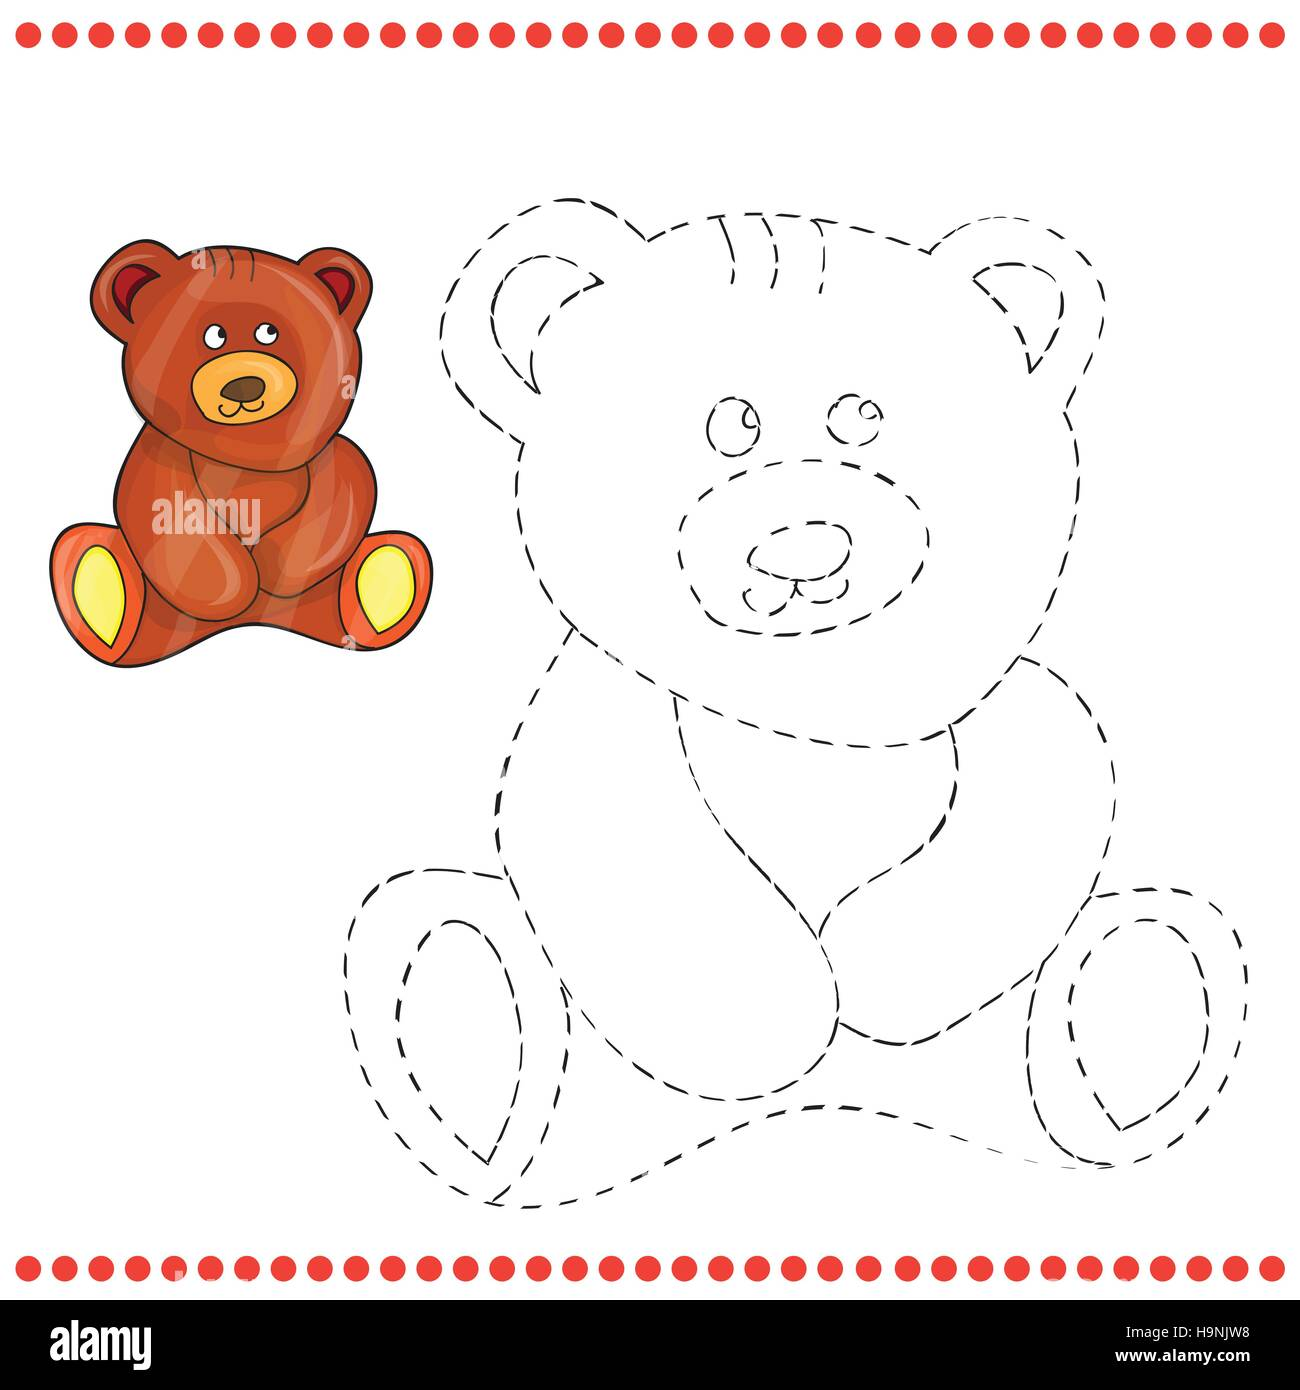 Connect the dots and coloring page - teddy bear - Stock Vector